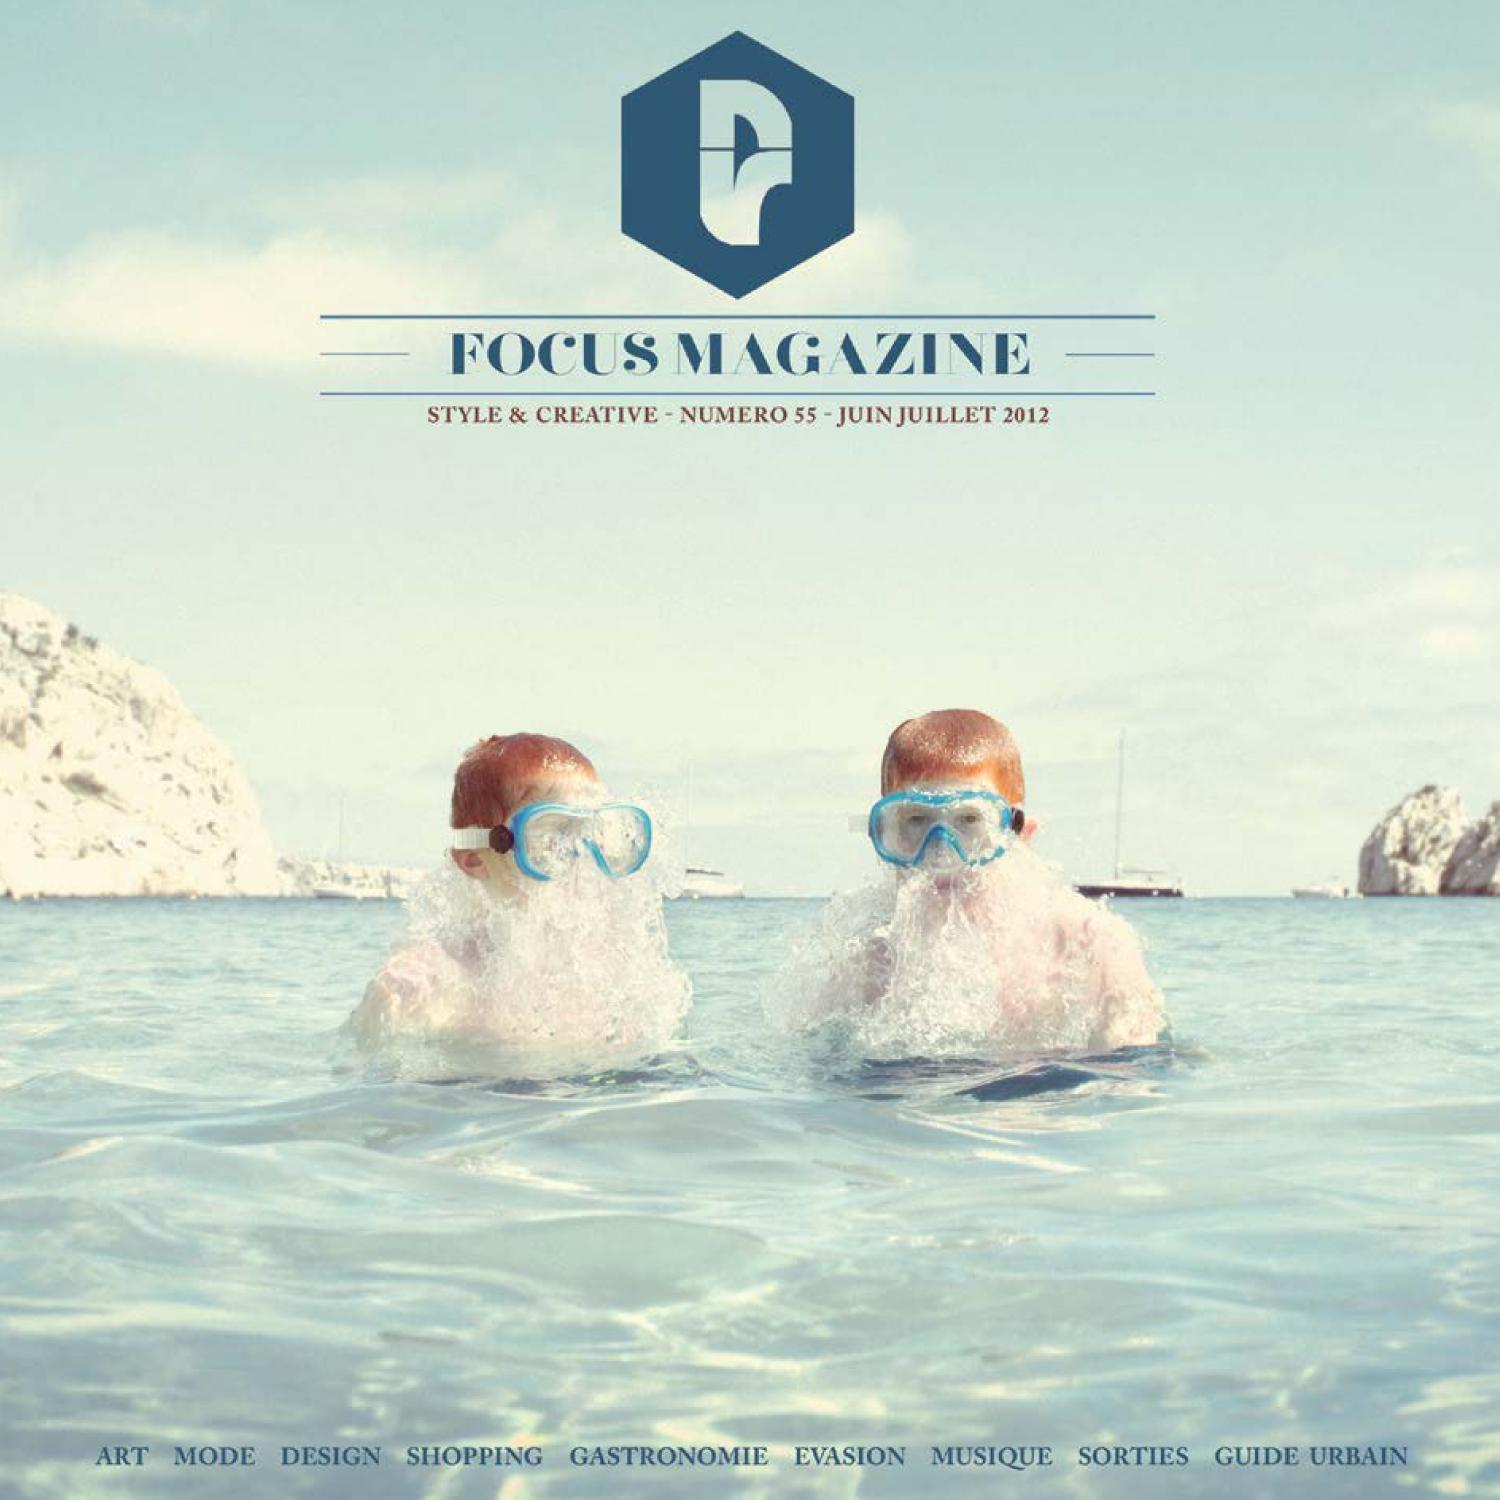 FOCUS MAGAZINE 55 by FOCUS MAGAZINE issuu